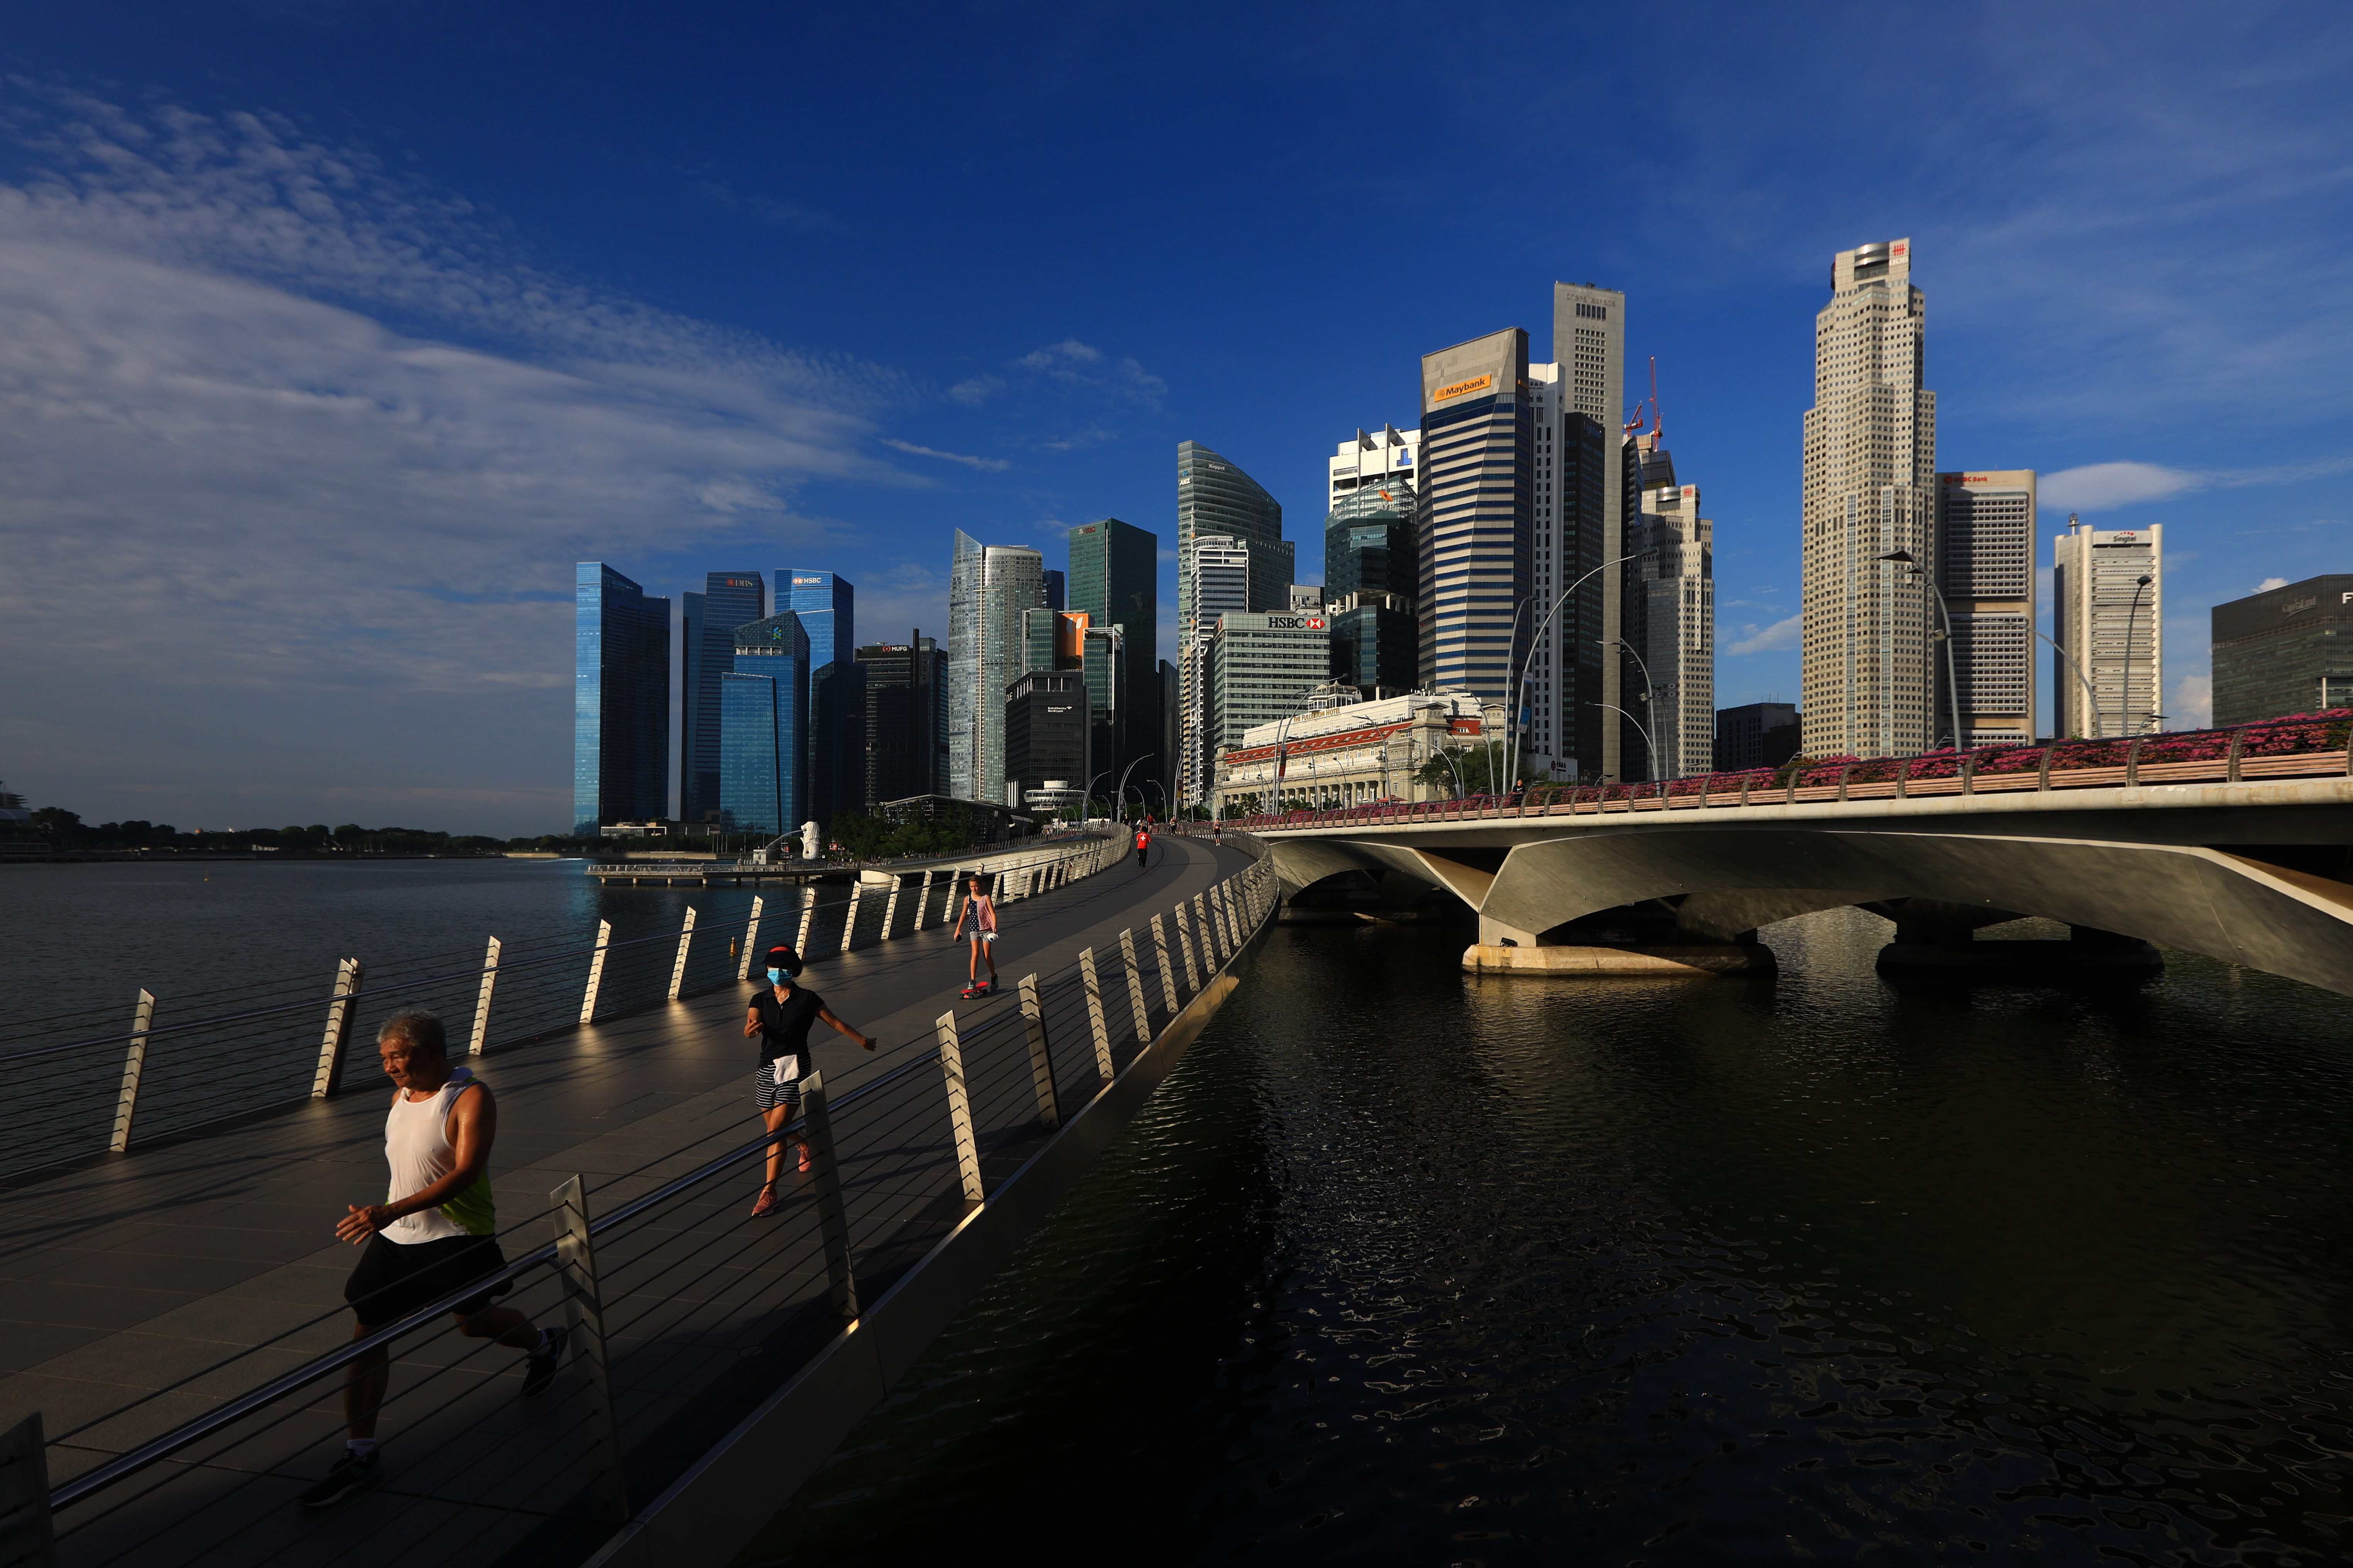 SINGAPORE - JUNE 07:  People jog along the Jubilee Bridge with the central business district seen in the background on June 7, 2020 in Singapore. From June 2, Singapore embarked on phase one of a three phase approach against the coronavirus (COVID-19) pandemic as it began to ease the partial lockdown measures by allowing the safe re-opening of economic activities which do not pose high risk of transmission. This include the resumption of selected health services, re-opening of schools with school children attending schools on rotational basis, manufacturing and production facilities, construction sites that adhere to safety measures, finance and information services that do not require interactions and places of worship, amongst others. Retail outlets, social and entertainment activities will remain closed and dining in at food and beverage outlets will still be disallowed. The government will further ease restriction by the middle of June if the infection rate within the community remains low over the next two weeks.  (Photo by Suhaimi Abdullah/Getty Images)